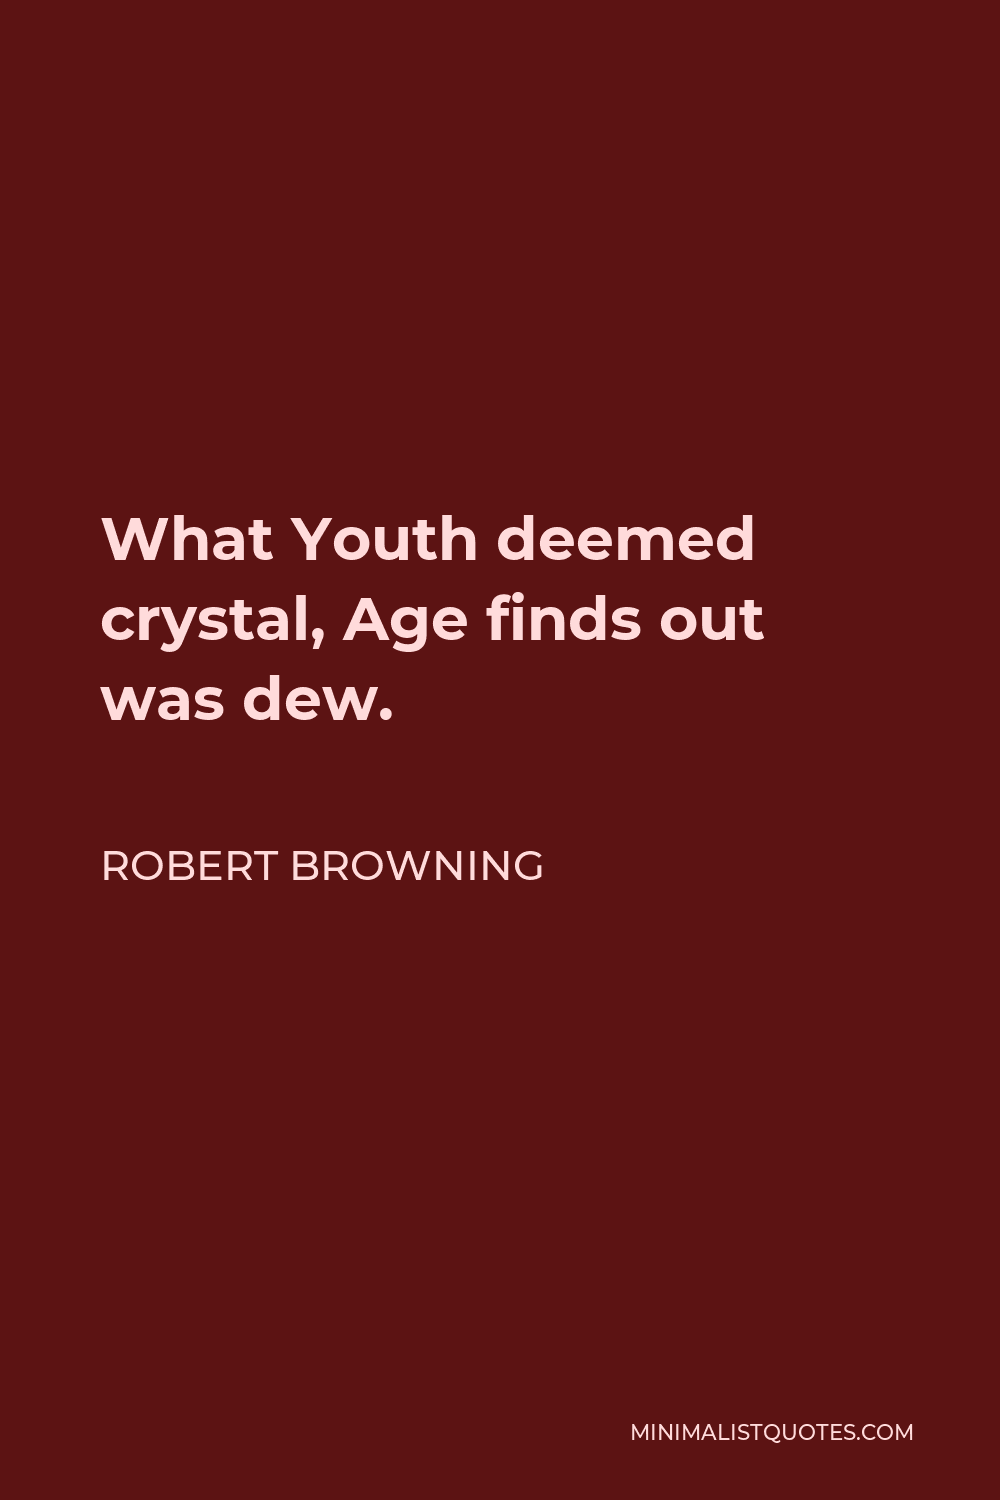 Robert Browning Quote - What Youth deemed crystal, Age finds out was dew.